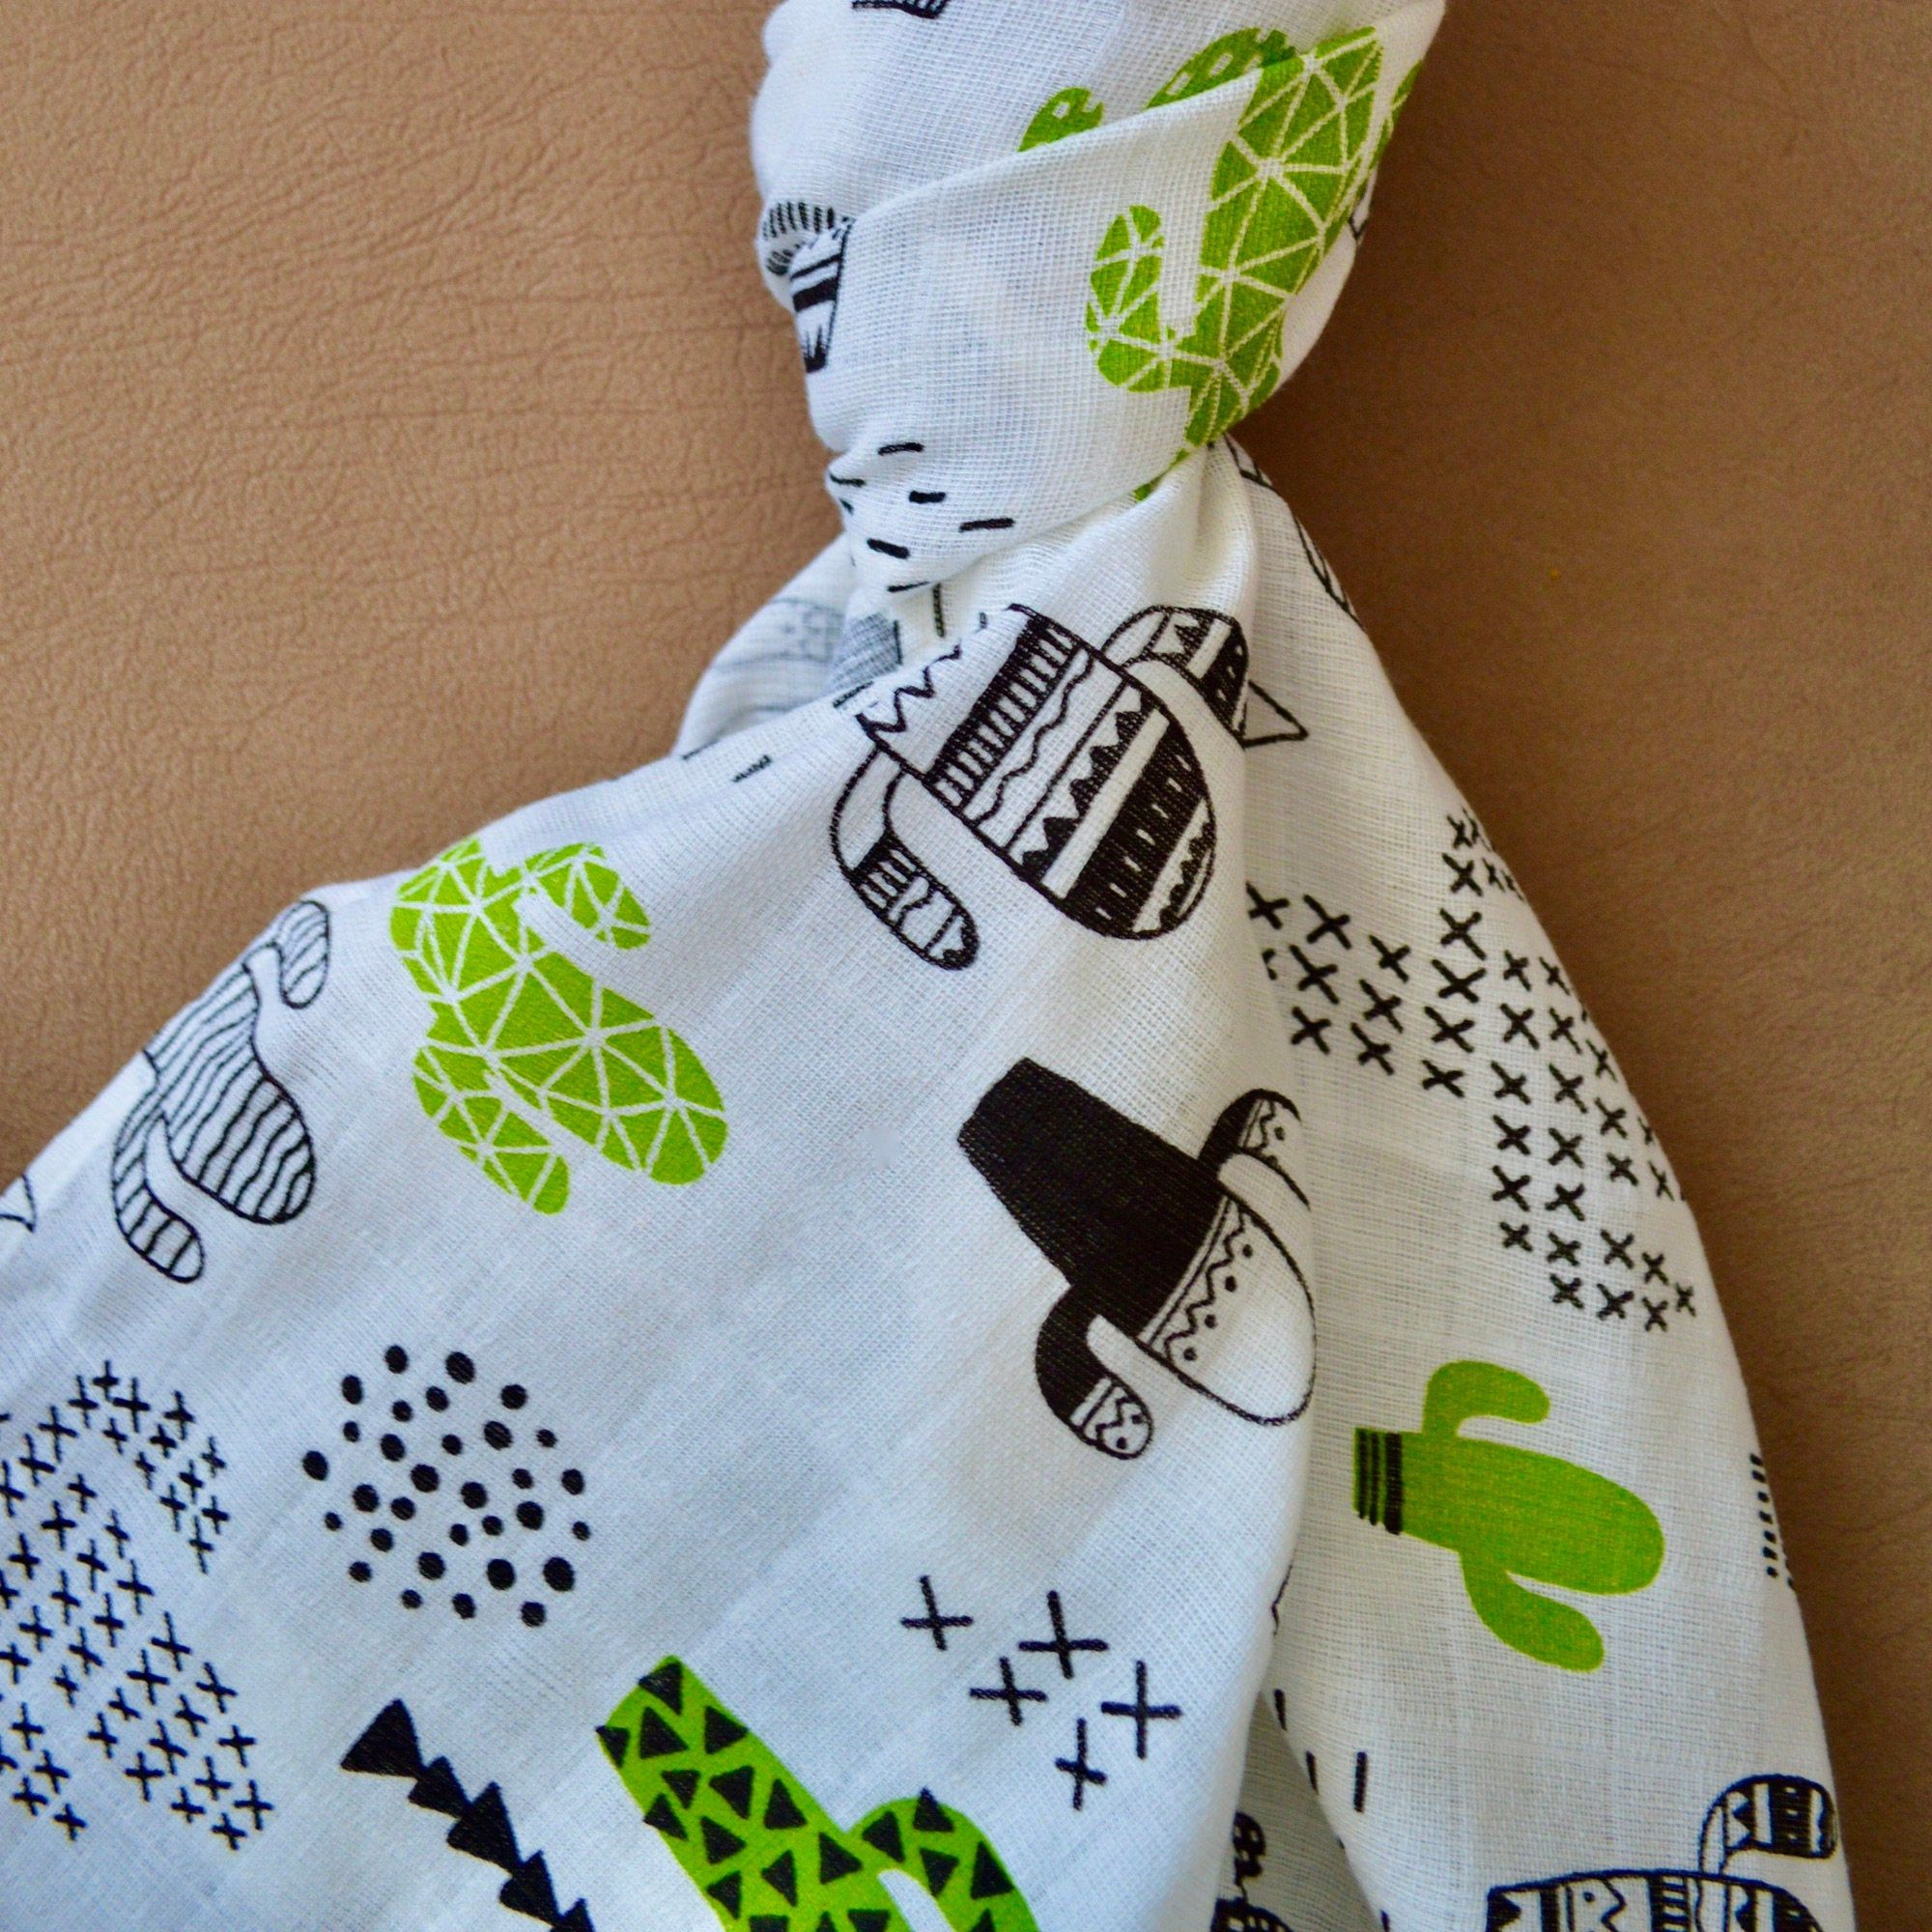 Muslin Swaddle Blanket Cactus 100 Cotton 39 Square Baby Blanket Baby Gift For Boy Girl Gender Neutral Baby Boy Gift Baby Girl Gift In 2020 Muslin Swaddle Blanket Baby Boy Gifts Muslin Swaddling